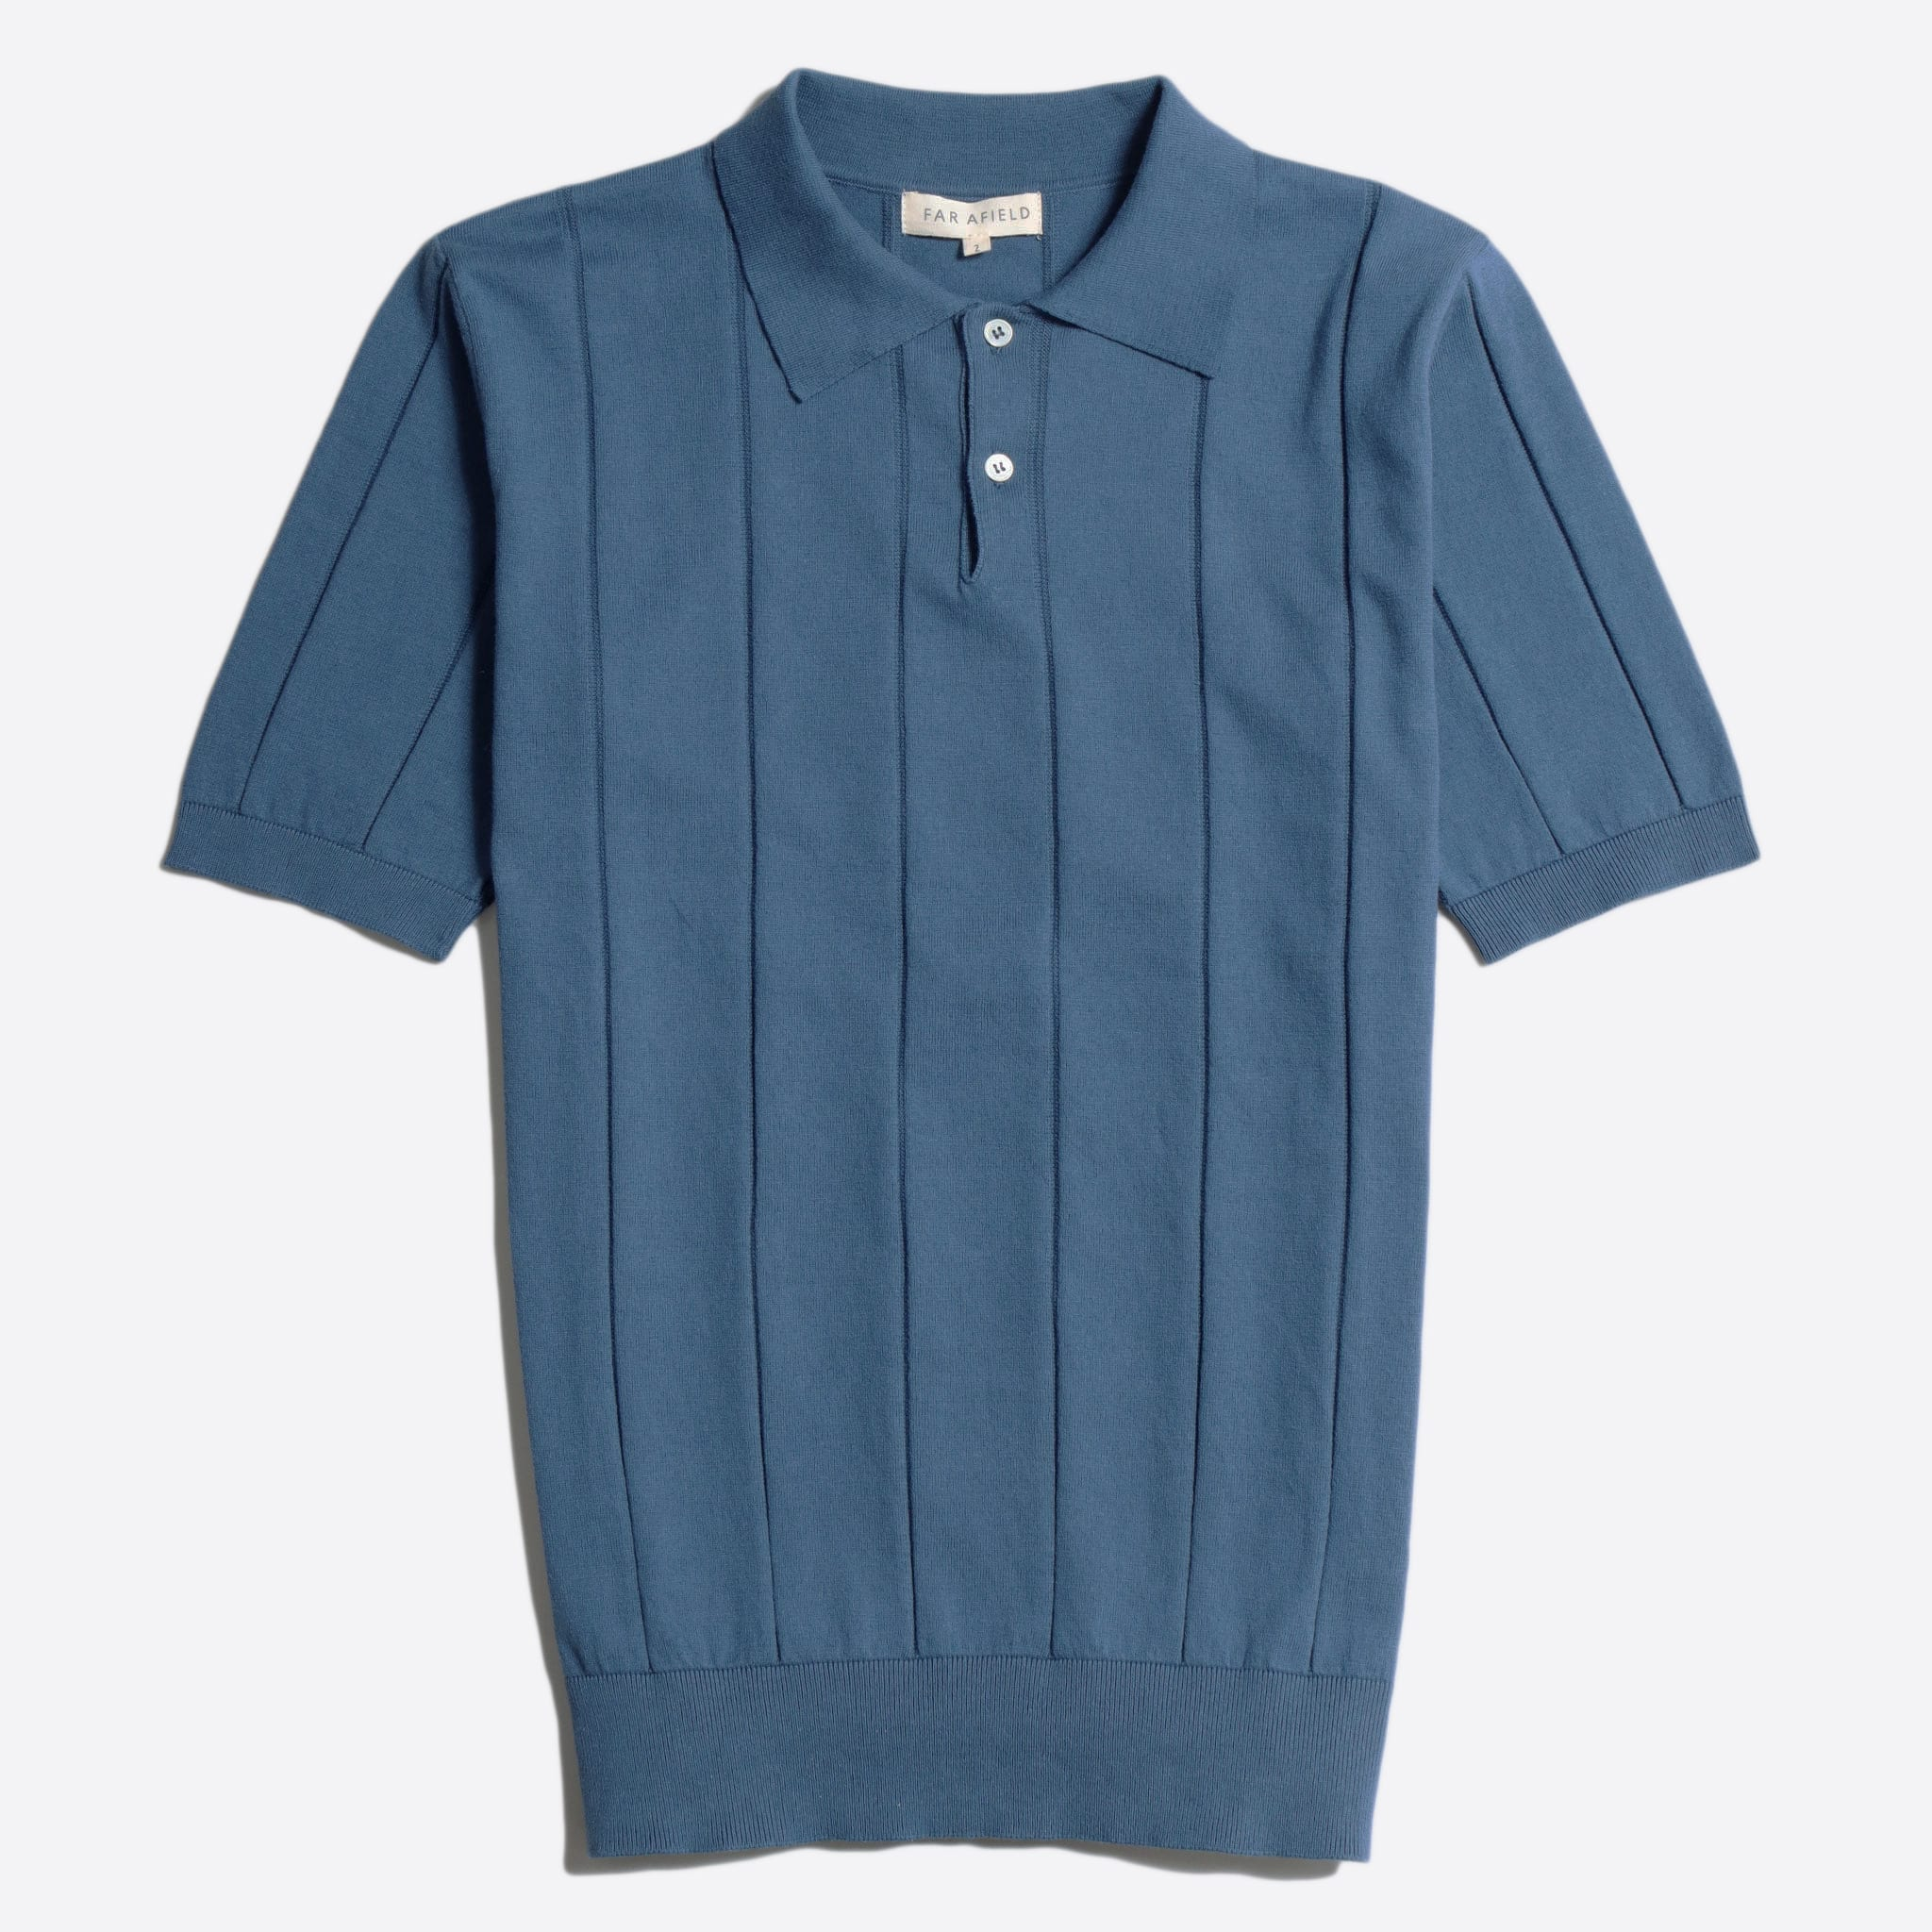 Far Afield Jacobs Short Sleeve Polo a Ensign Blue Organic Cotton FabricMid Century Inspired